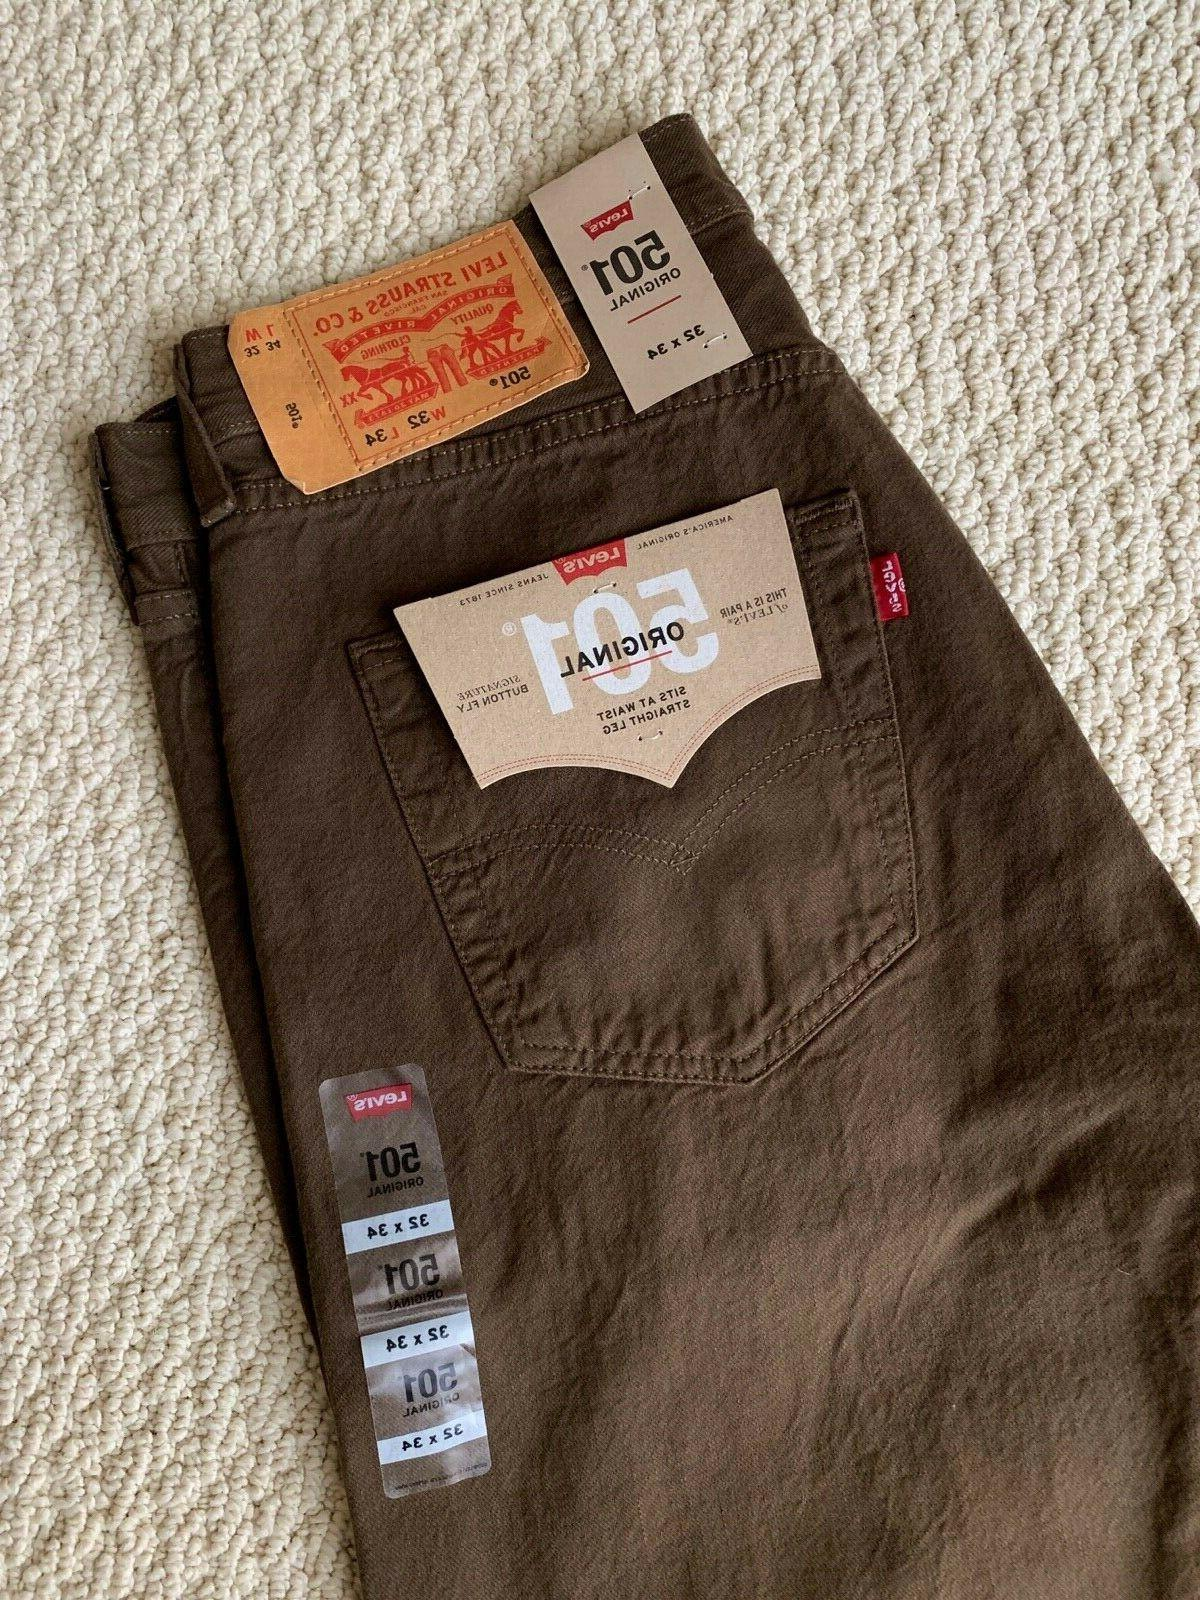 NWT Men's 501 Original Denim Straight Jeans SIZES